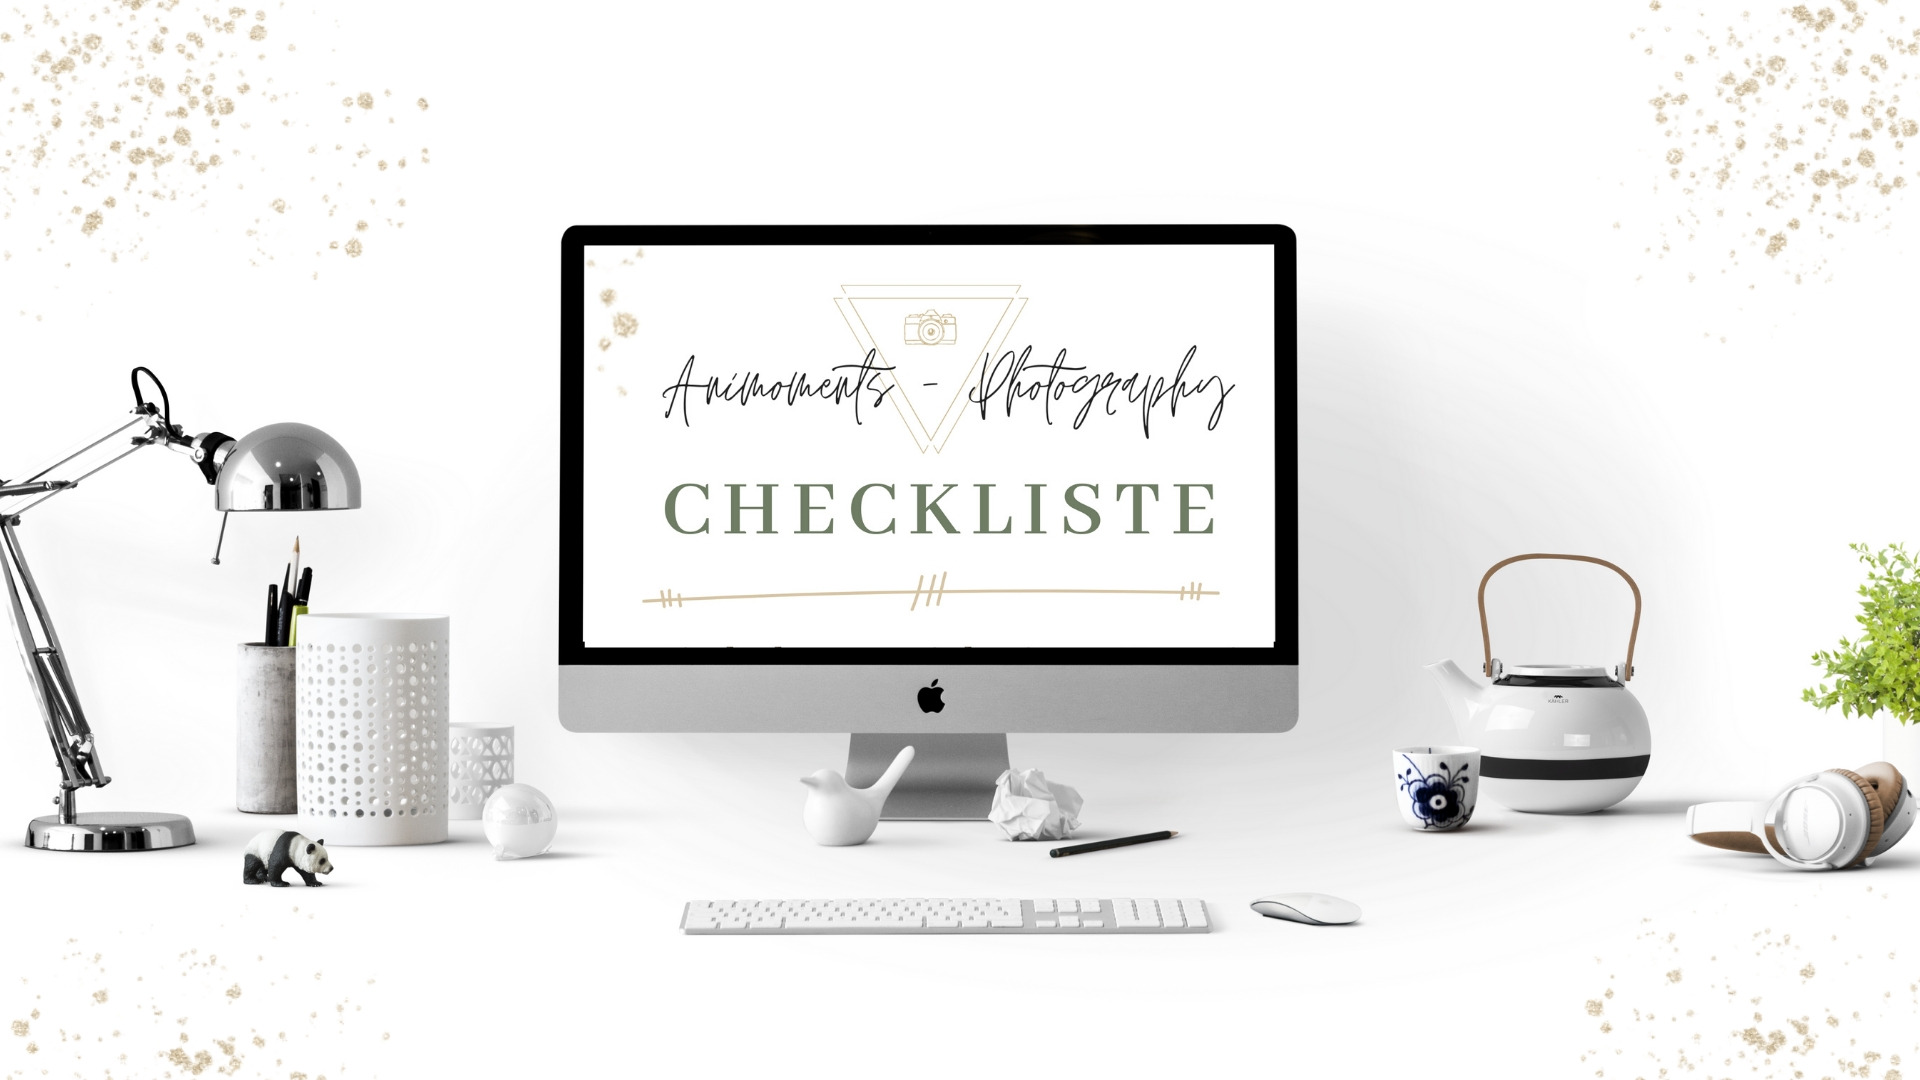 checkliste webseite Animoments